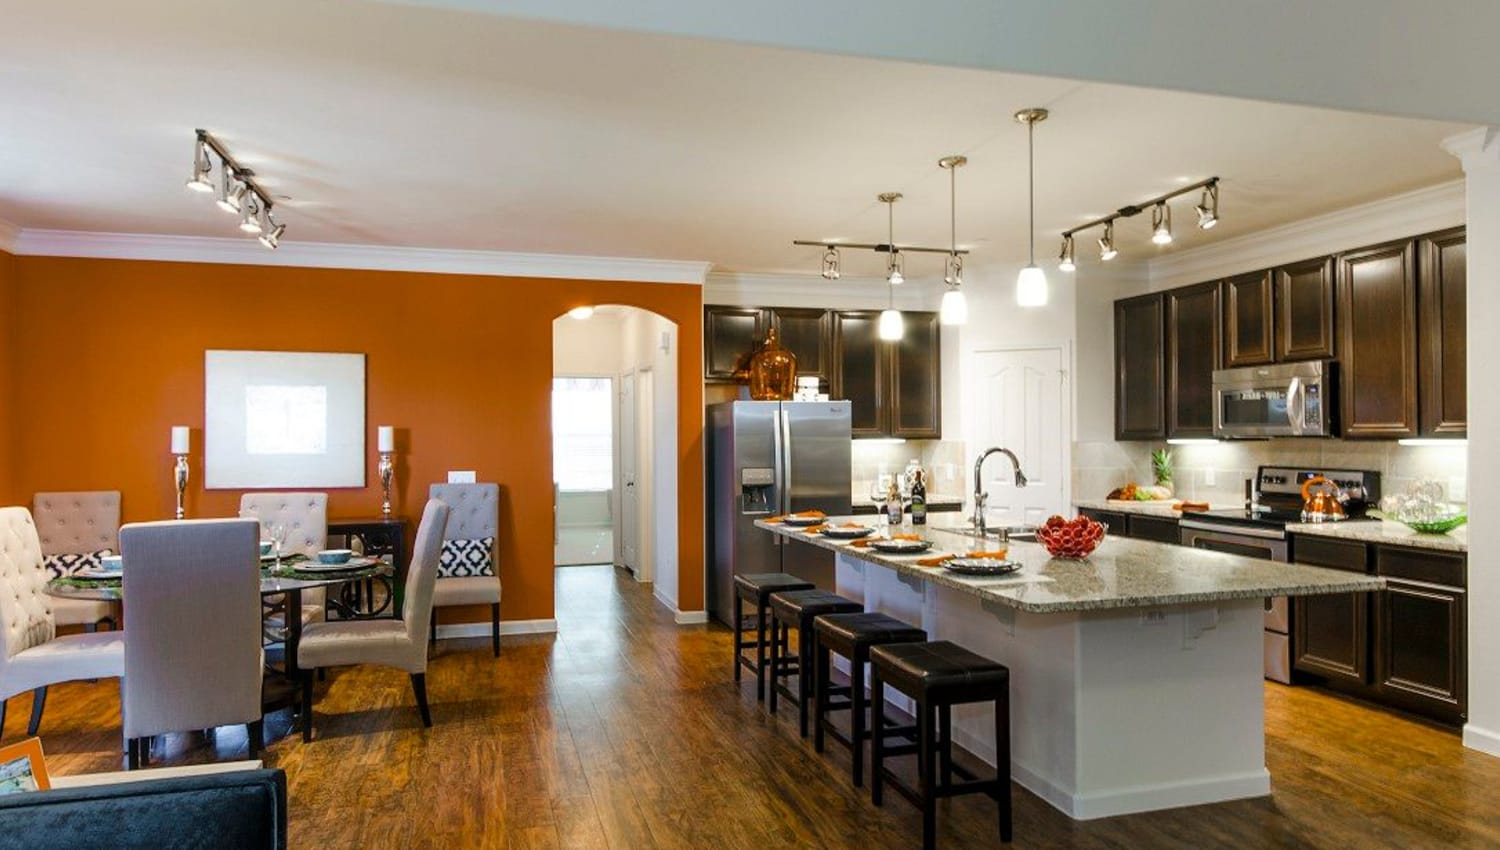 Gorgeously designed open-concept living and kitchen areas with an accent wall and hardwood floors in a model apartment at Olympus Woodbridge in Sachse, Texas